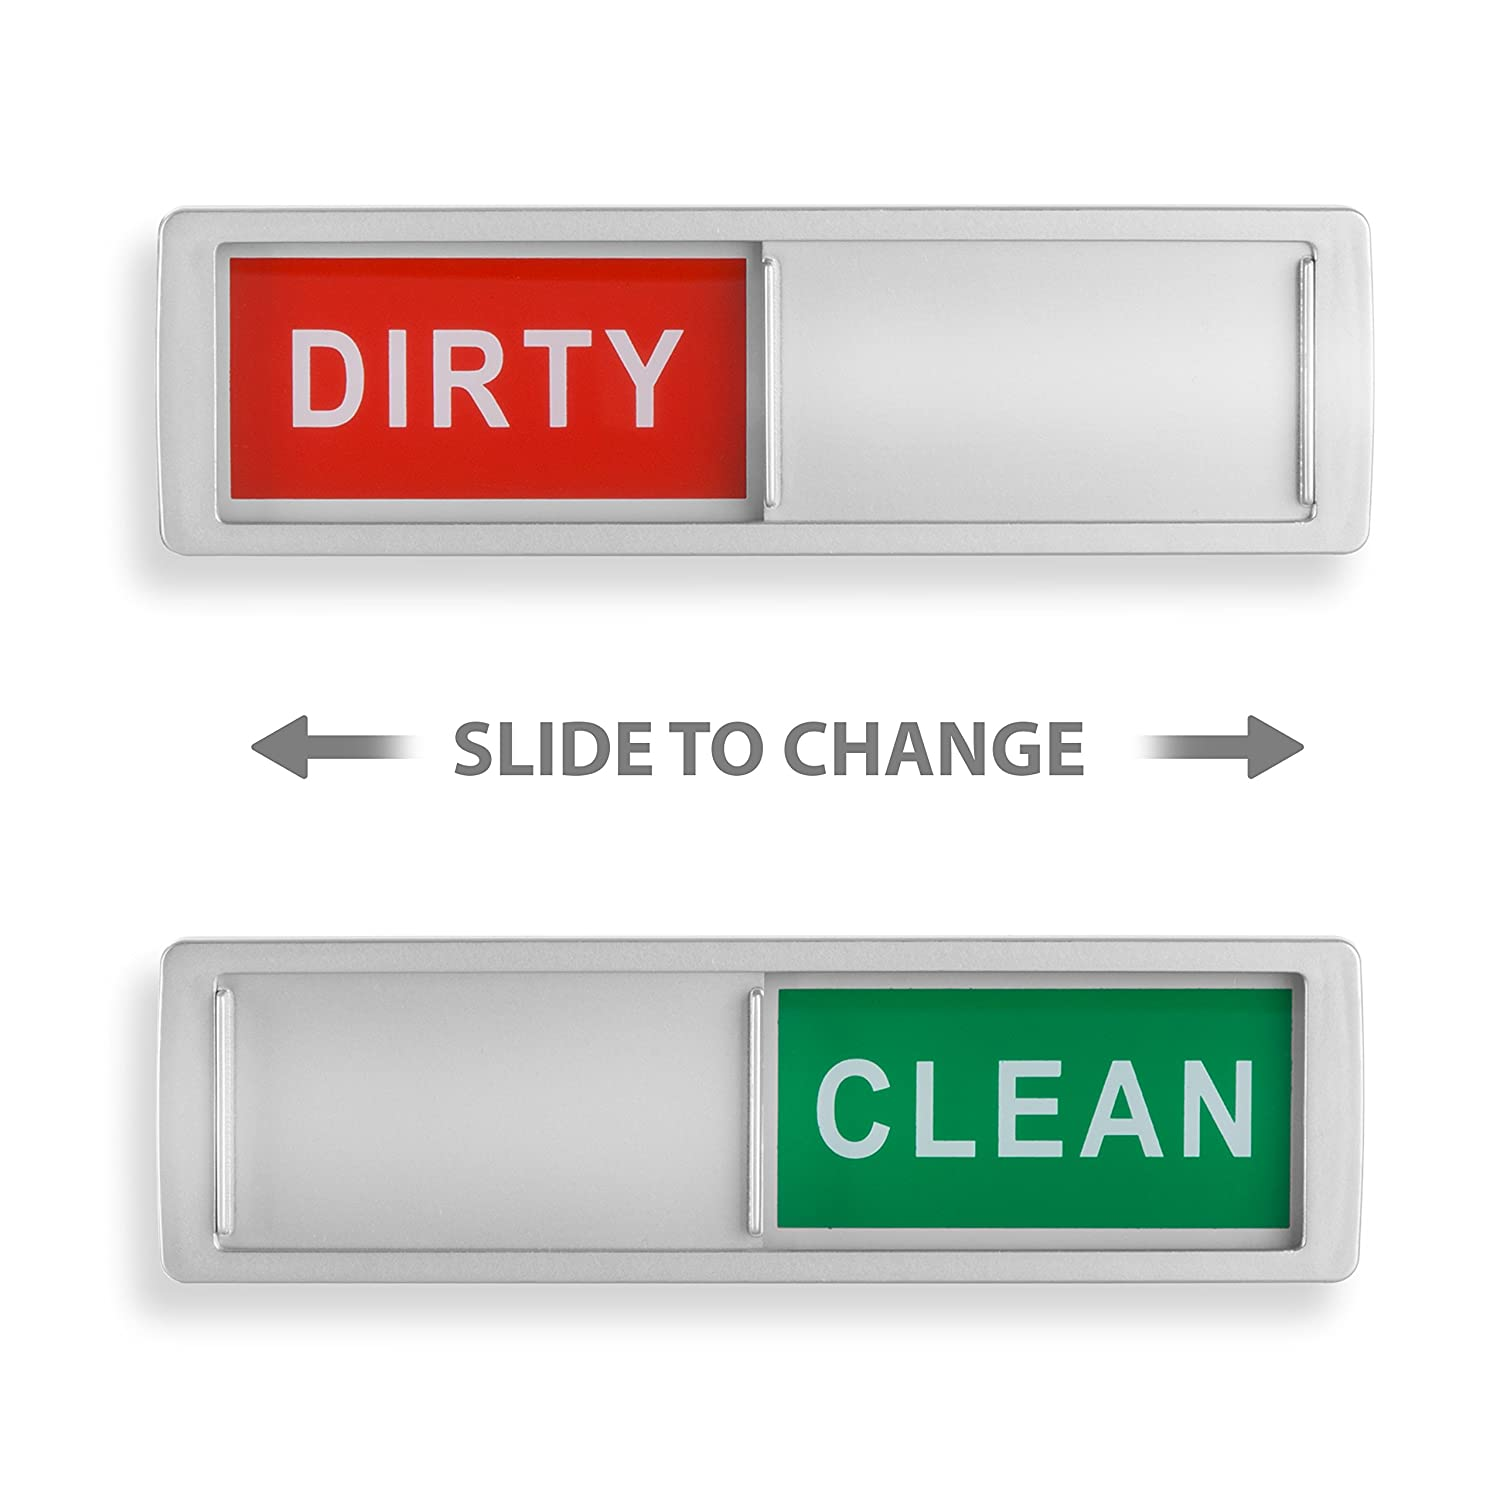 Clean Dirty Dishwasher Magnet - Non-Scratch Magnetic Silver Signage Indicator for Kitchen Dishes with Clear, Bold & Colored Text - Easy to Read & Slide for Changing Signs (silver)